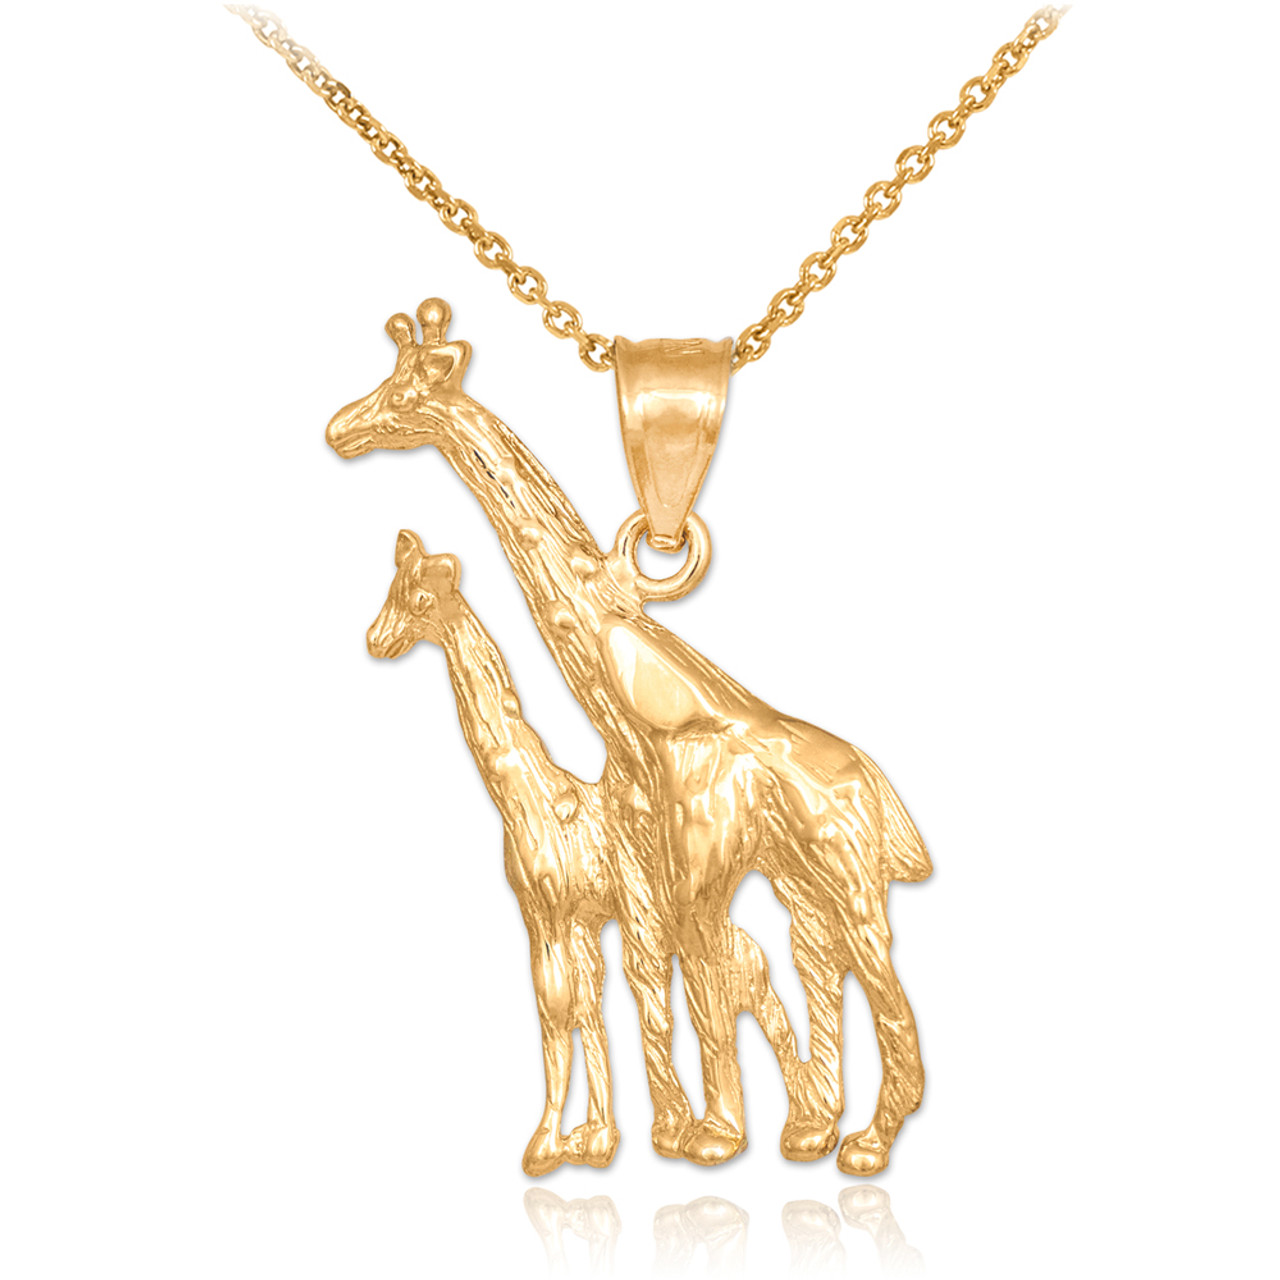 pendant suppliers buy giraffe wysiwyg chain from com necklace product store tone fashion reliable long silver color antique aliexpress simple